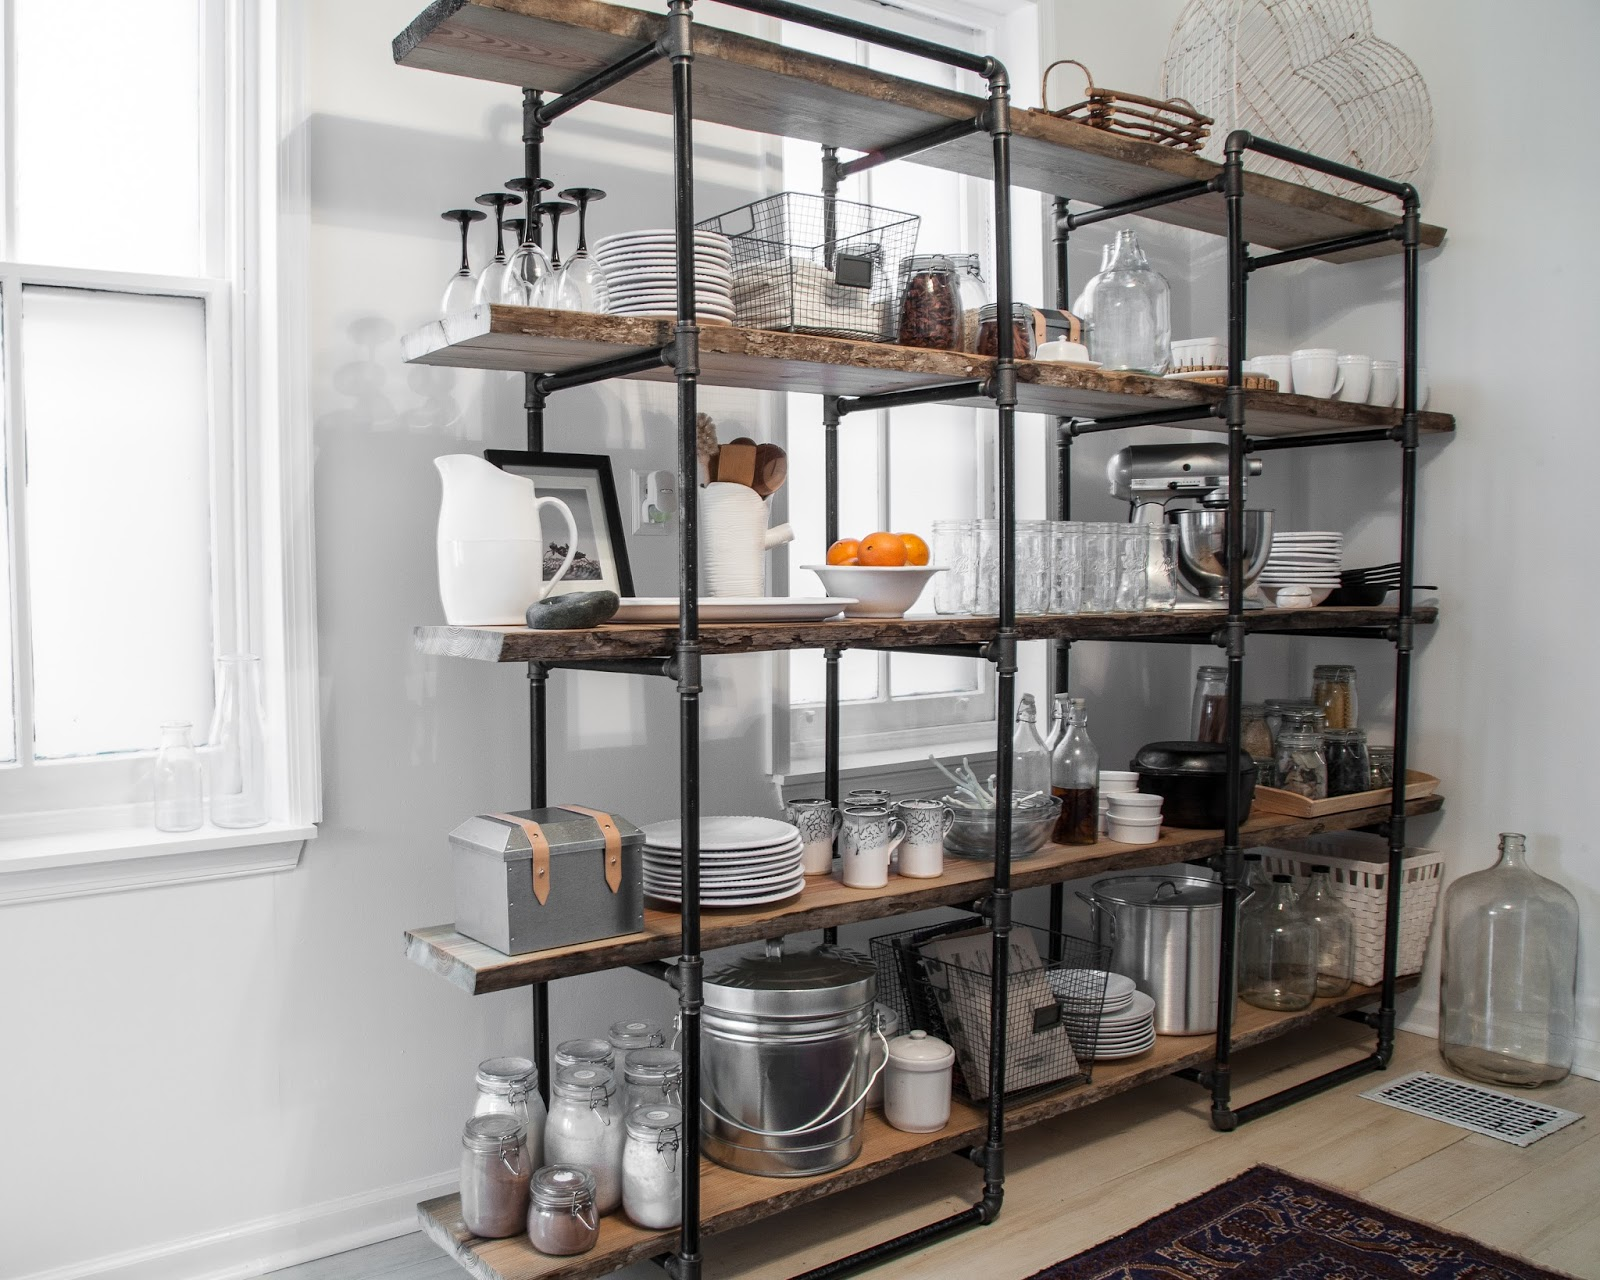 DIY Project: How to Build a Freestanding Industrial Shelf